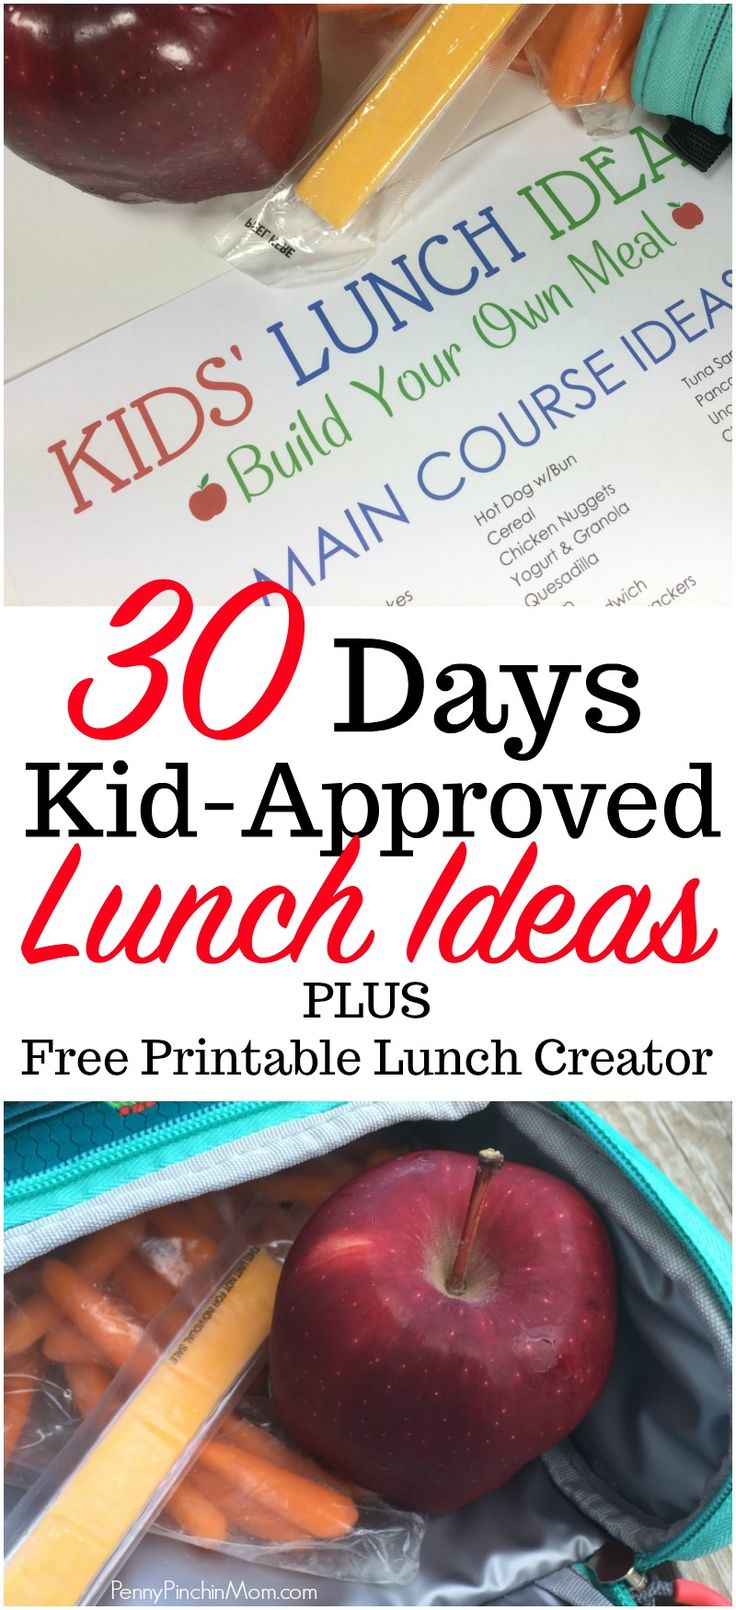 30 days of kid-approved lunch ideas PLUS a  FREE printable lunch creator!